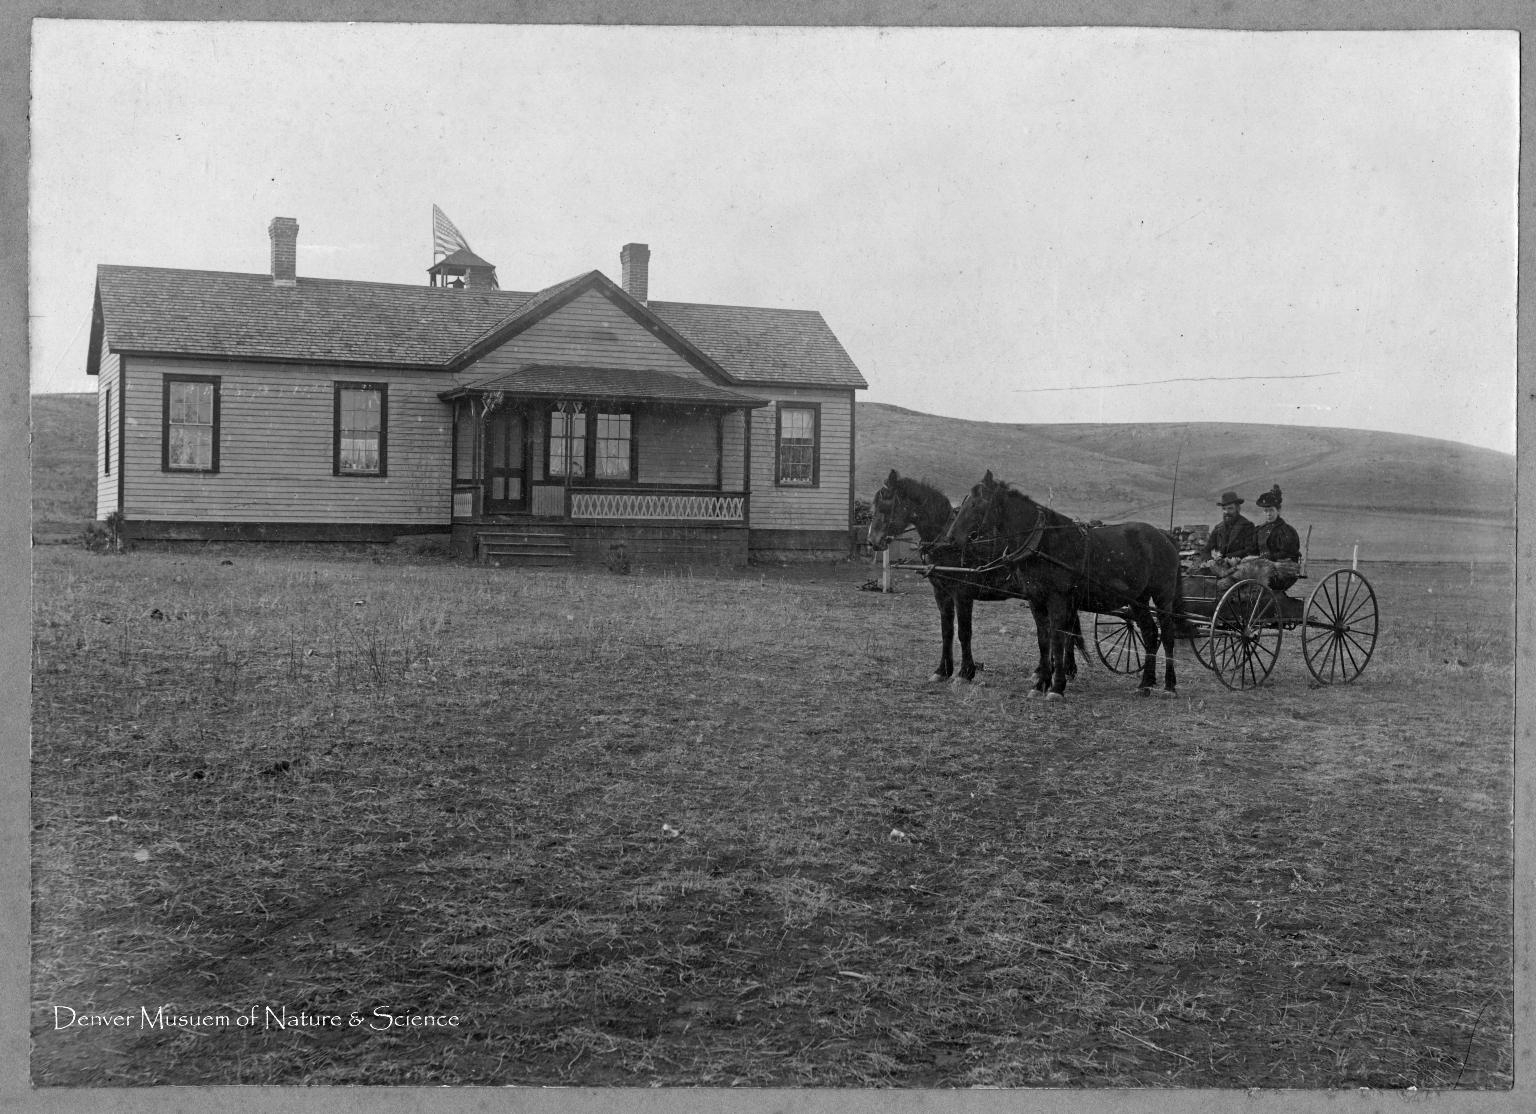 Mr. and Mrs. Whitwell in front of White River School